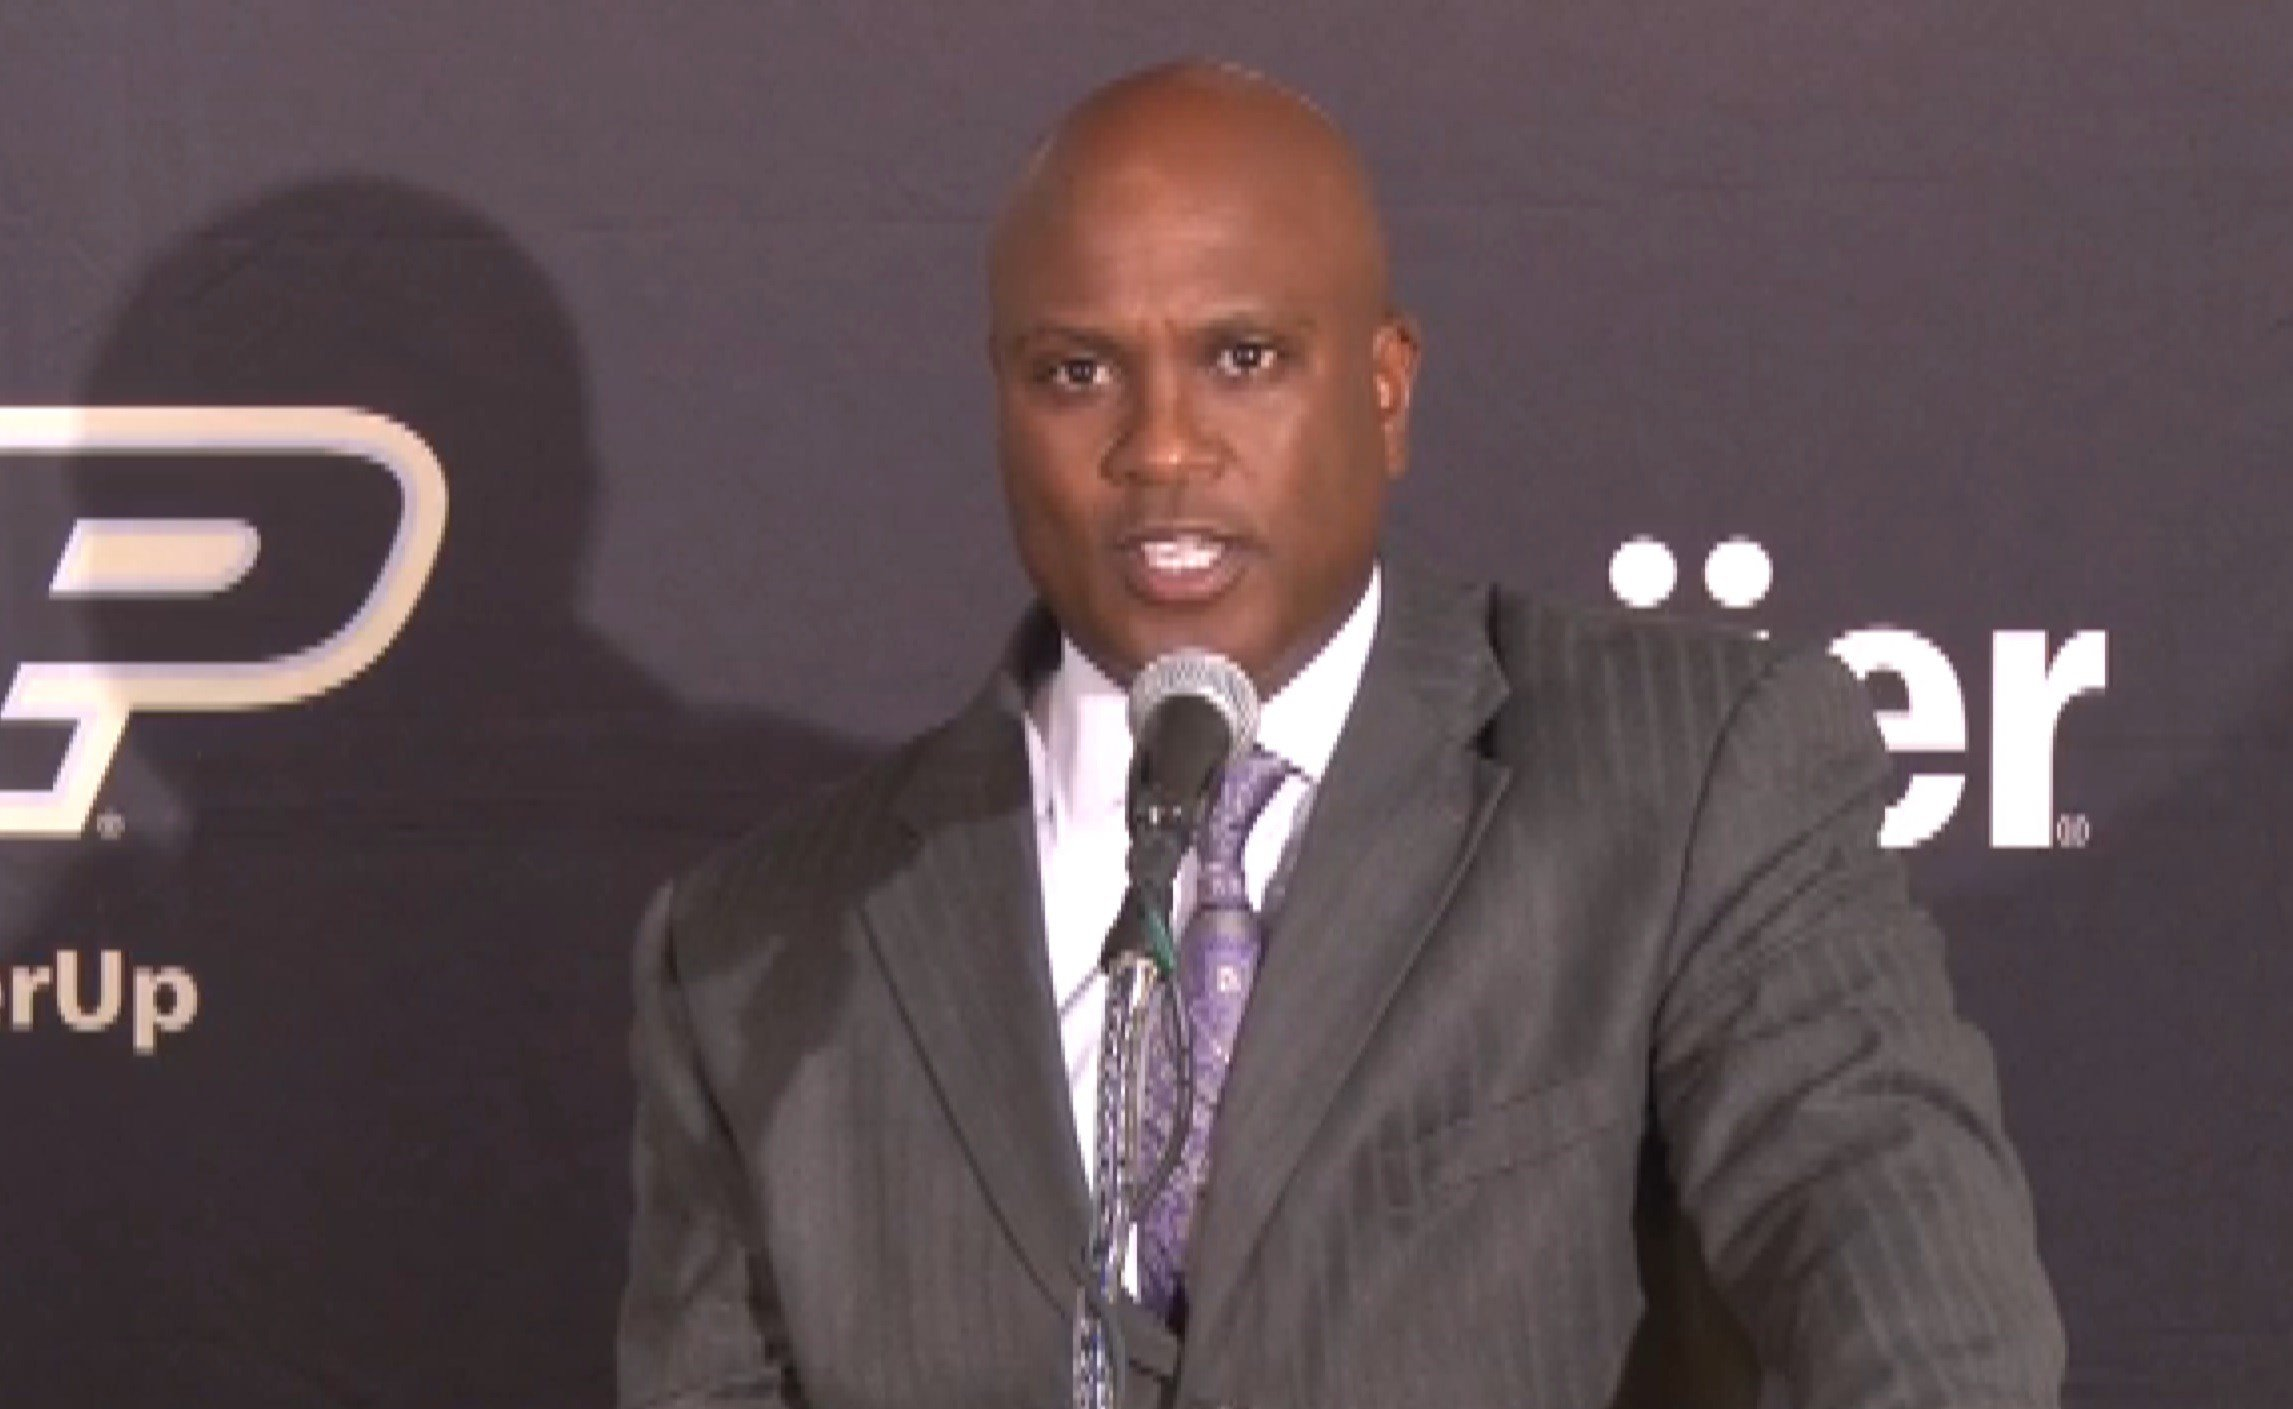 Purdue head coach Darrell Hazell is 8-32 (2-23 in the Big Ten) in three plus years on campus.